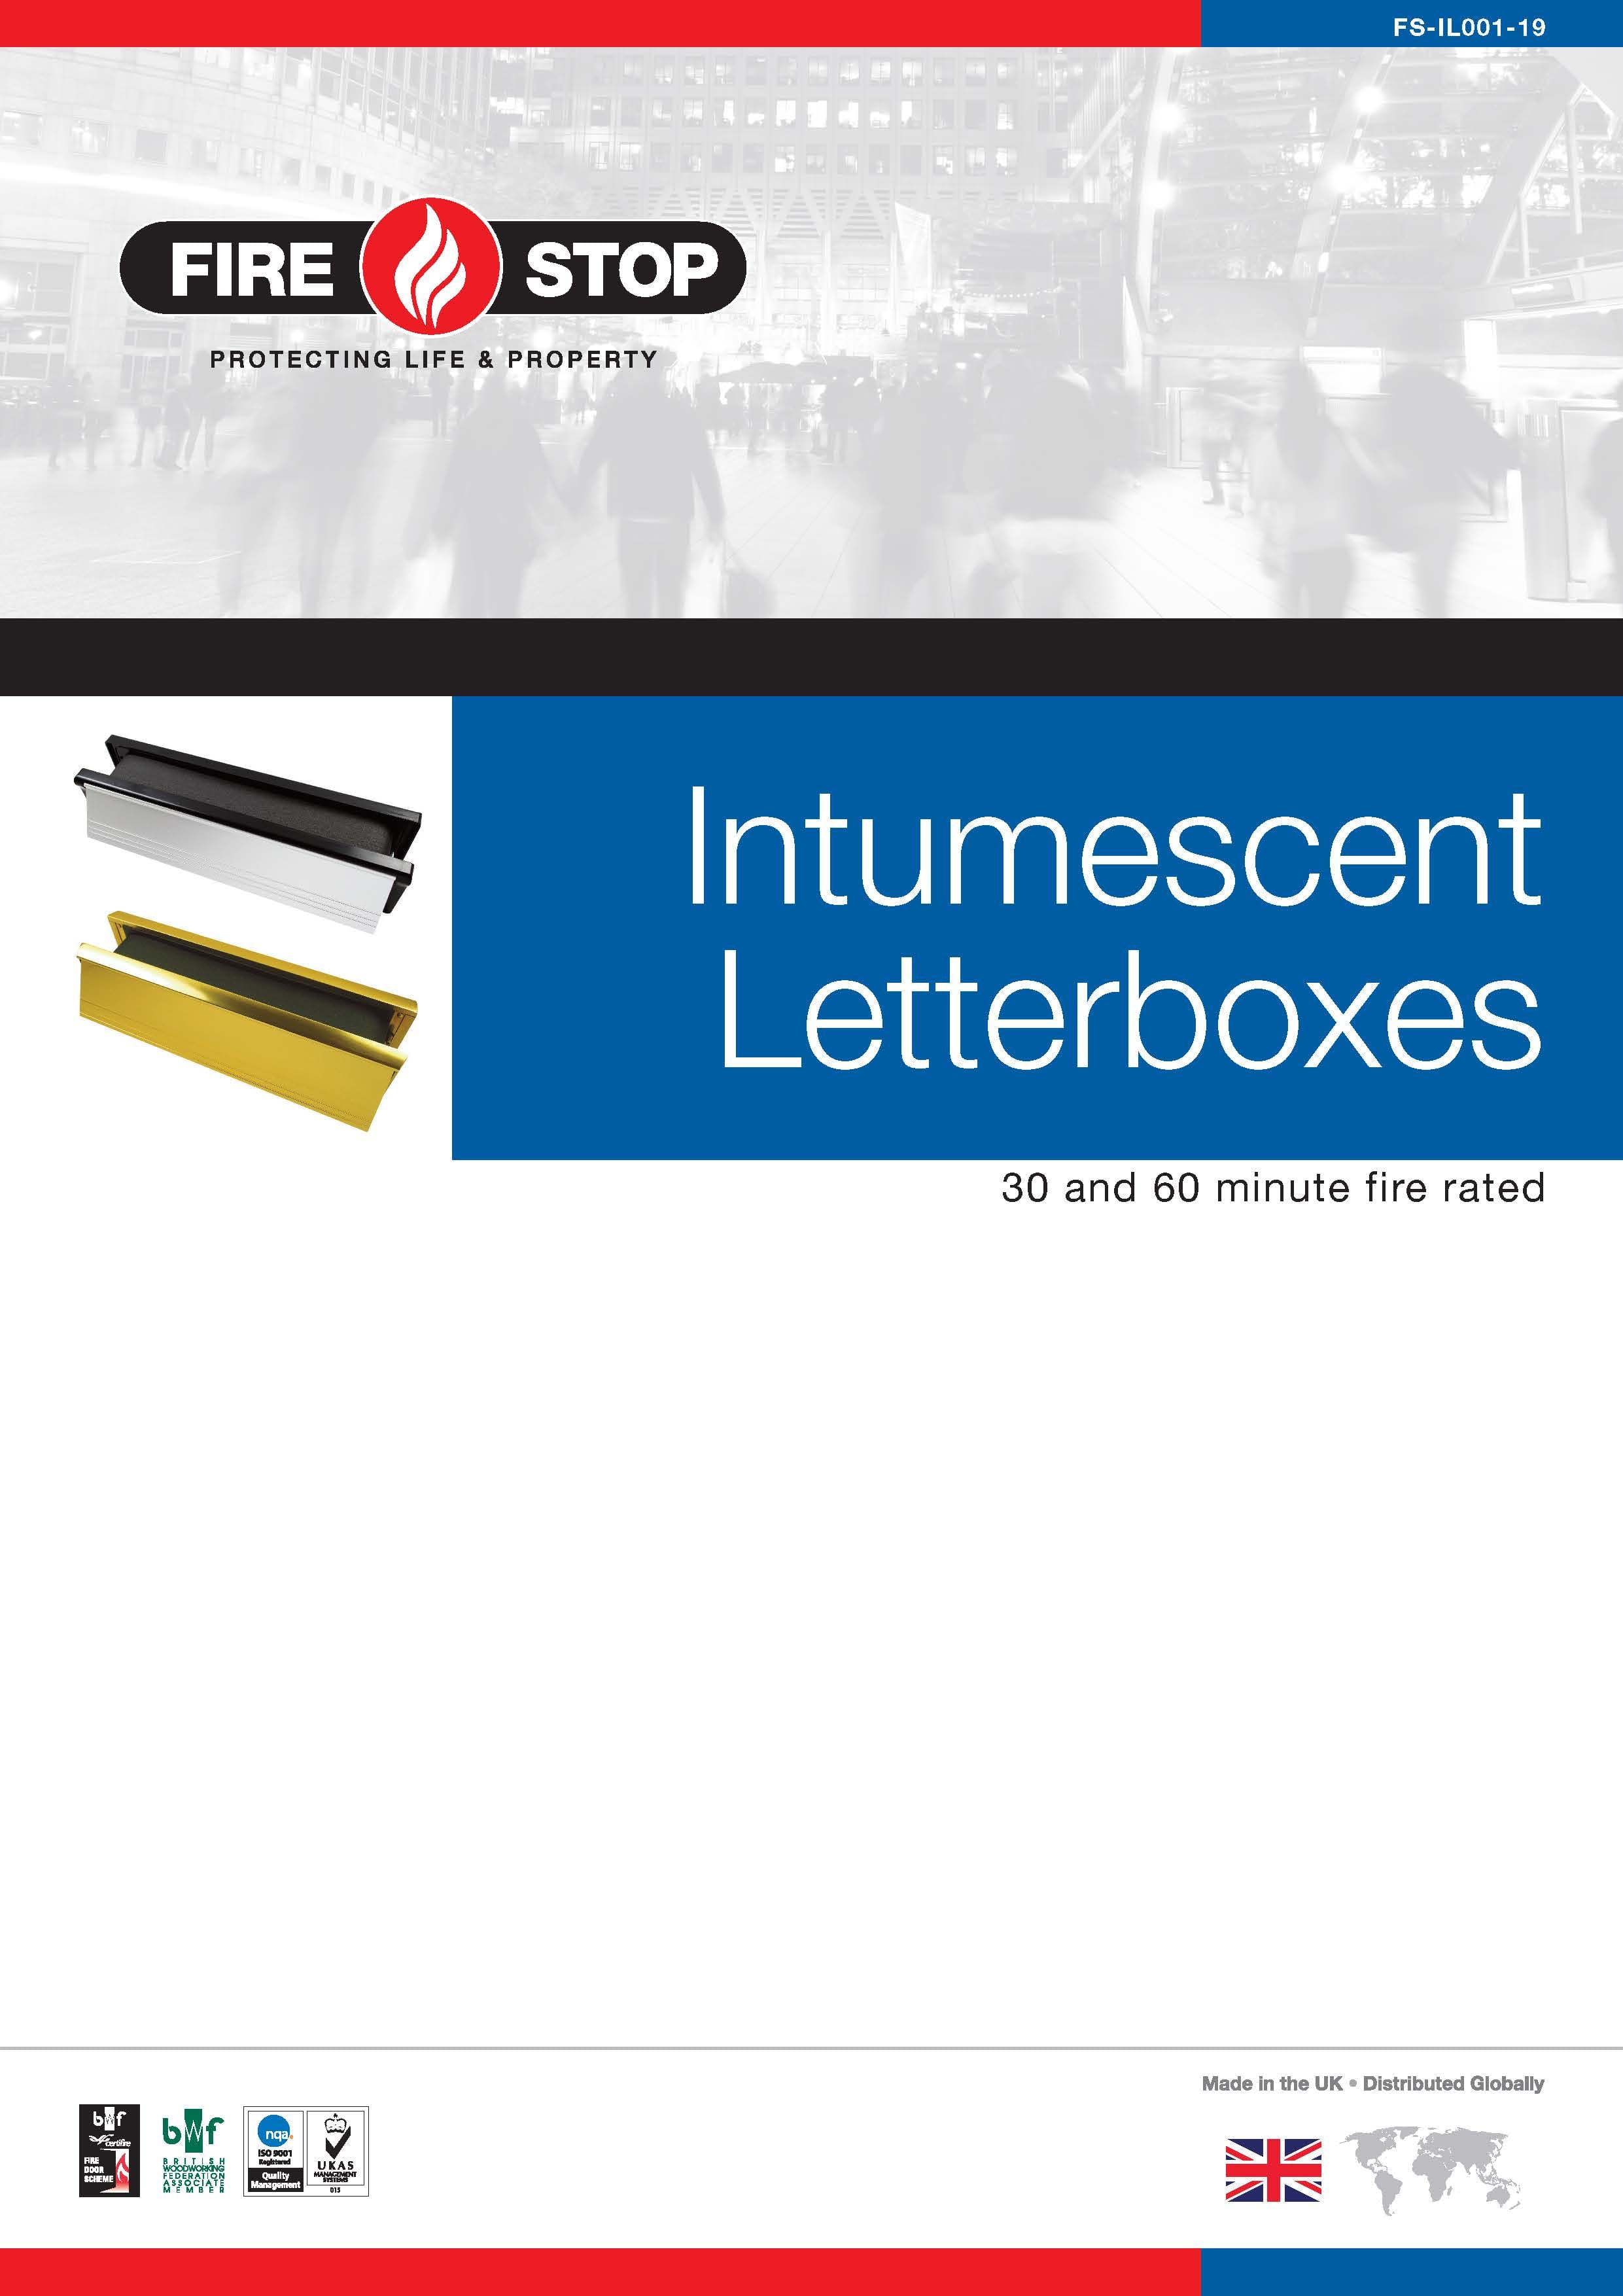 Firestop Intumescent Letterboxes brochure front page